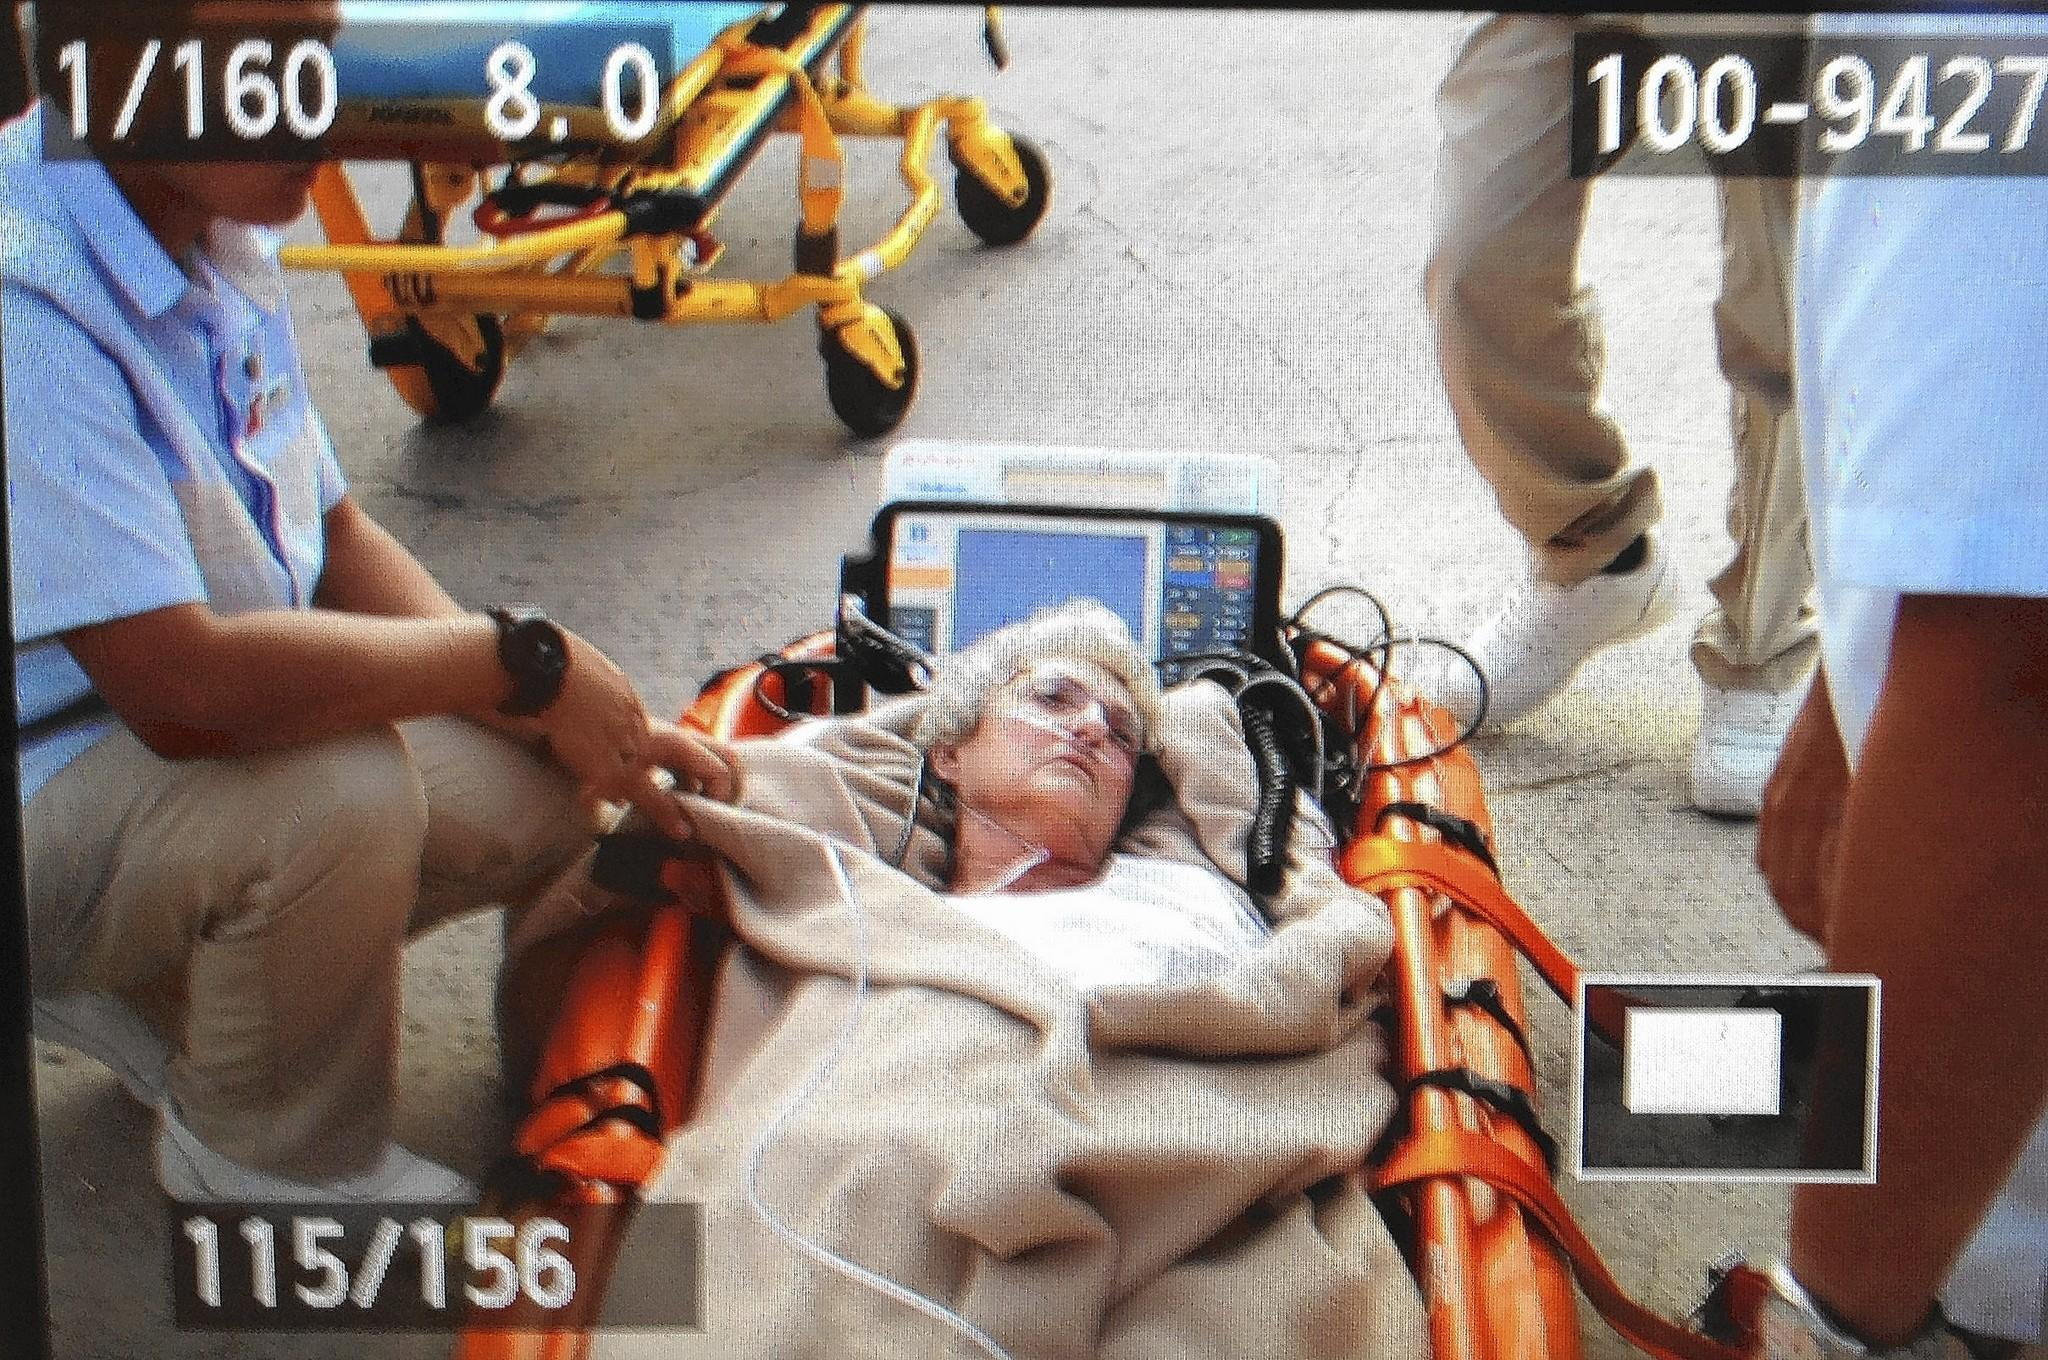 Elaine Smith, 73, is taken off the Carnival Liberty cruise ship in Grand Cayman after she fell ill with a life-threatening ulcer, Feb. 27, 2014, and was saved by transfusions from some of the estimated 150 passengers and crew who volunteered to give blood.